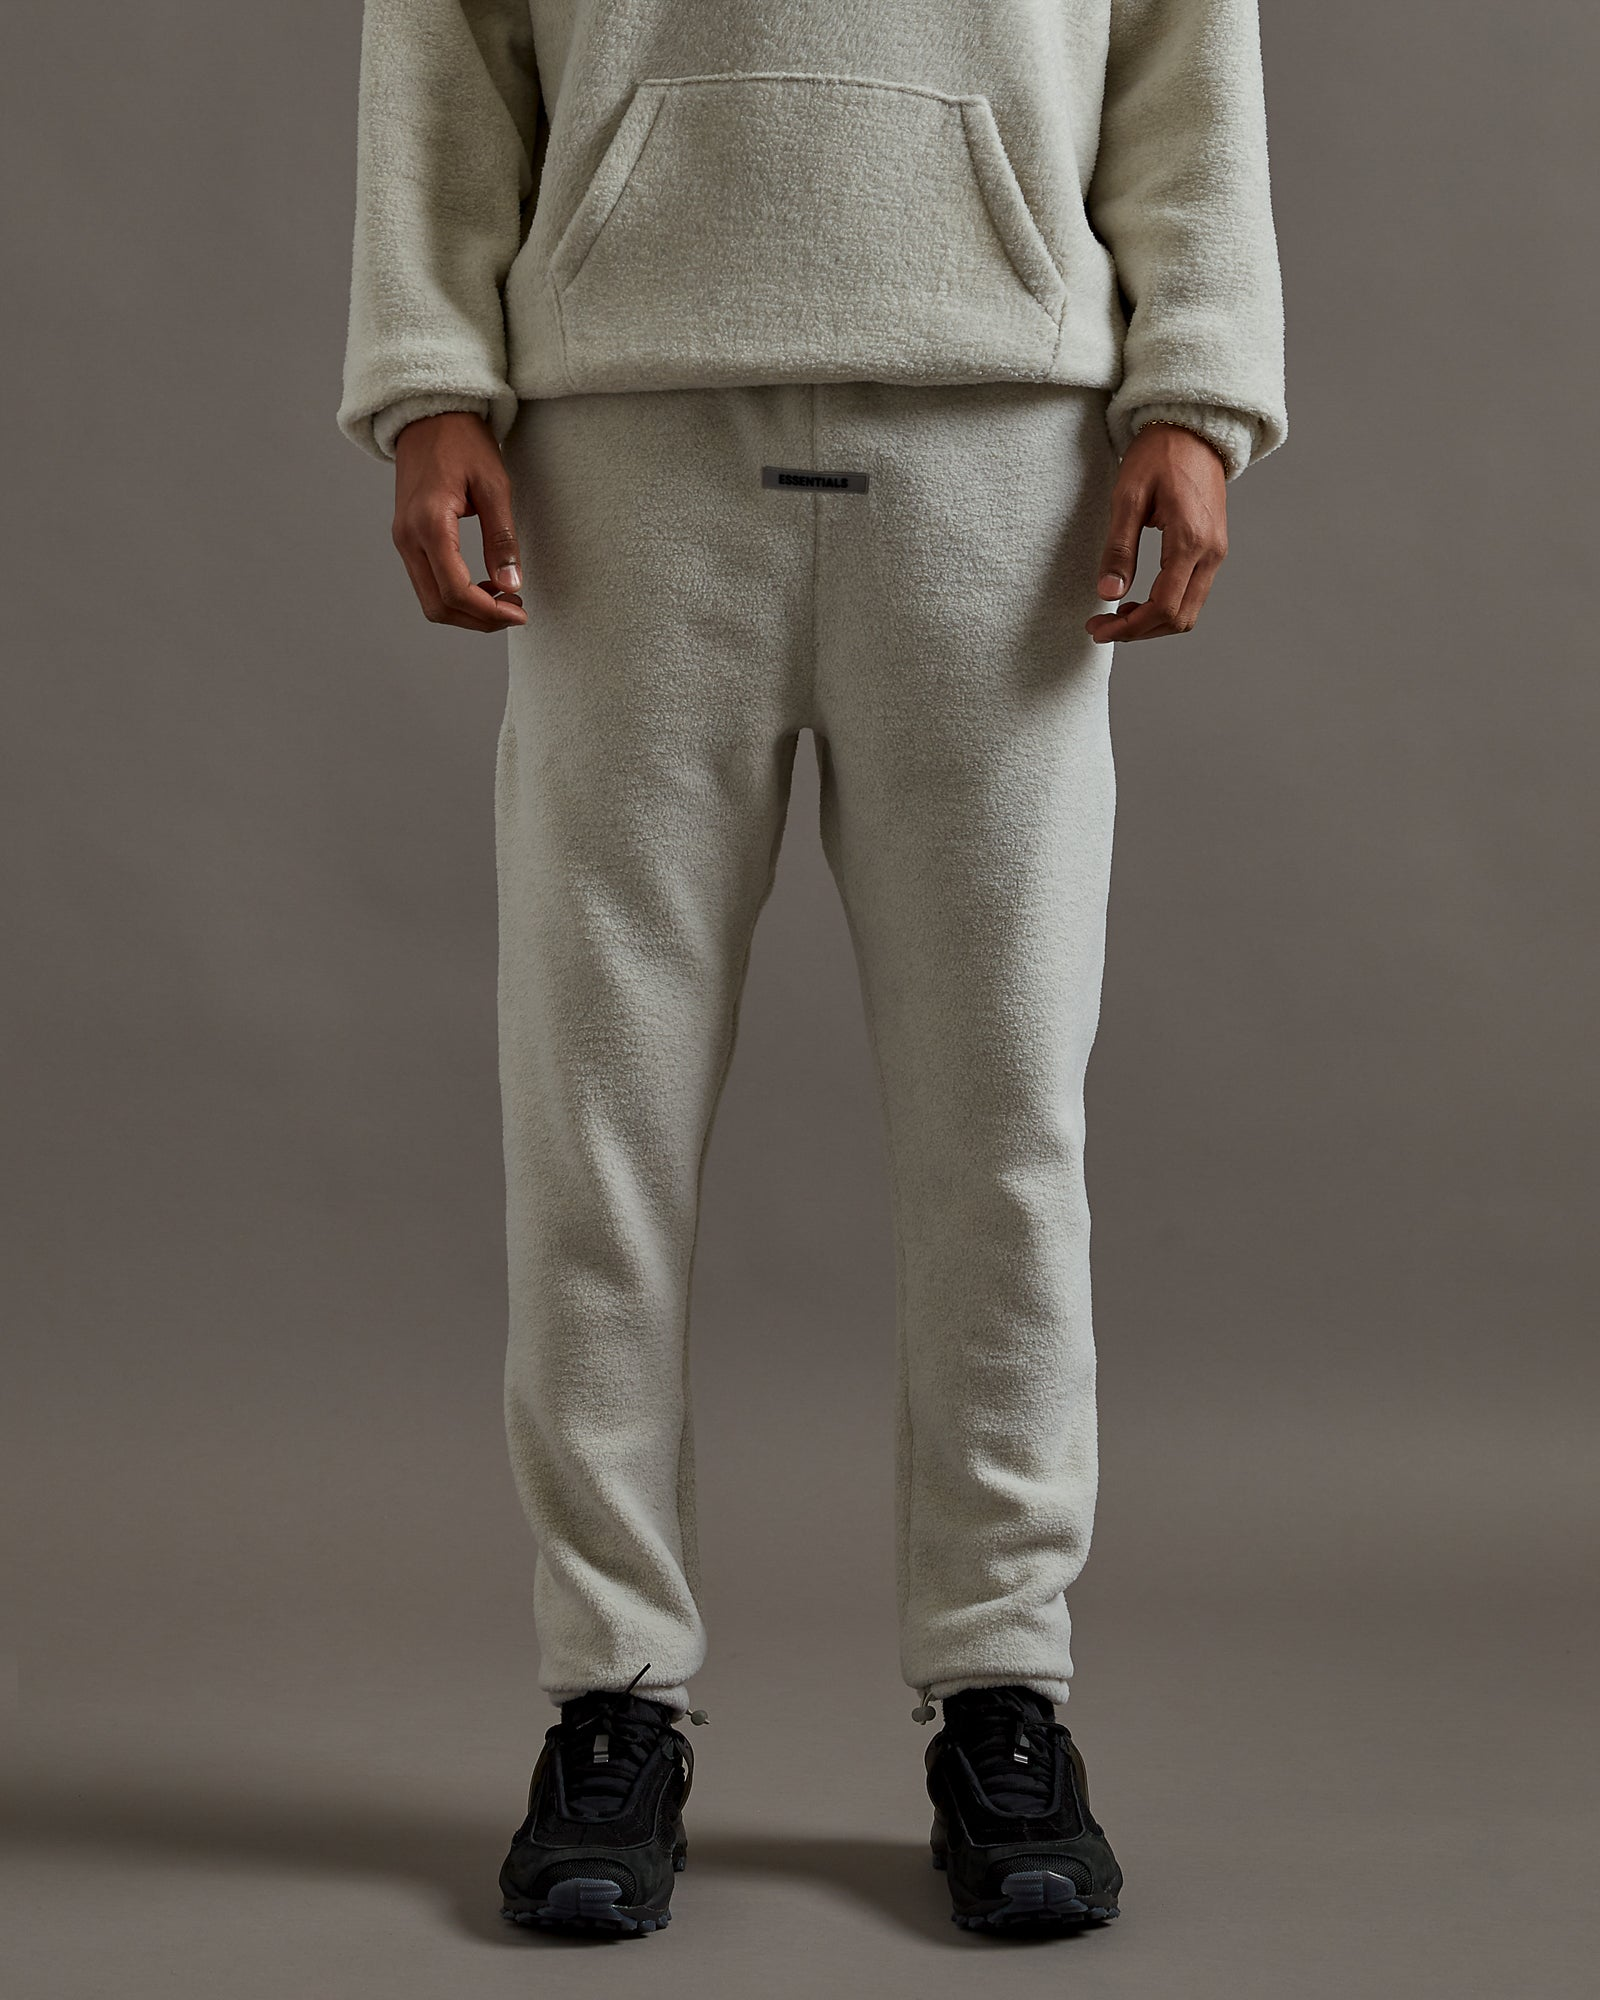 Polar Fleece Sweatpants in Oatmeal